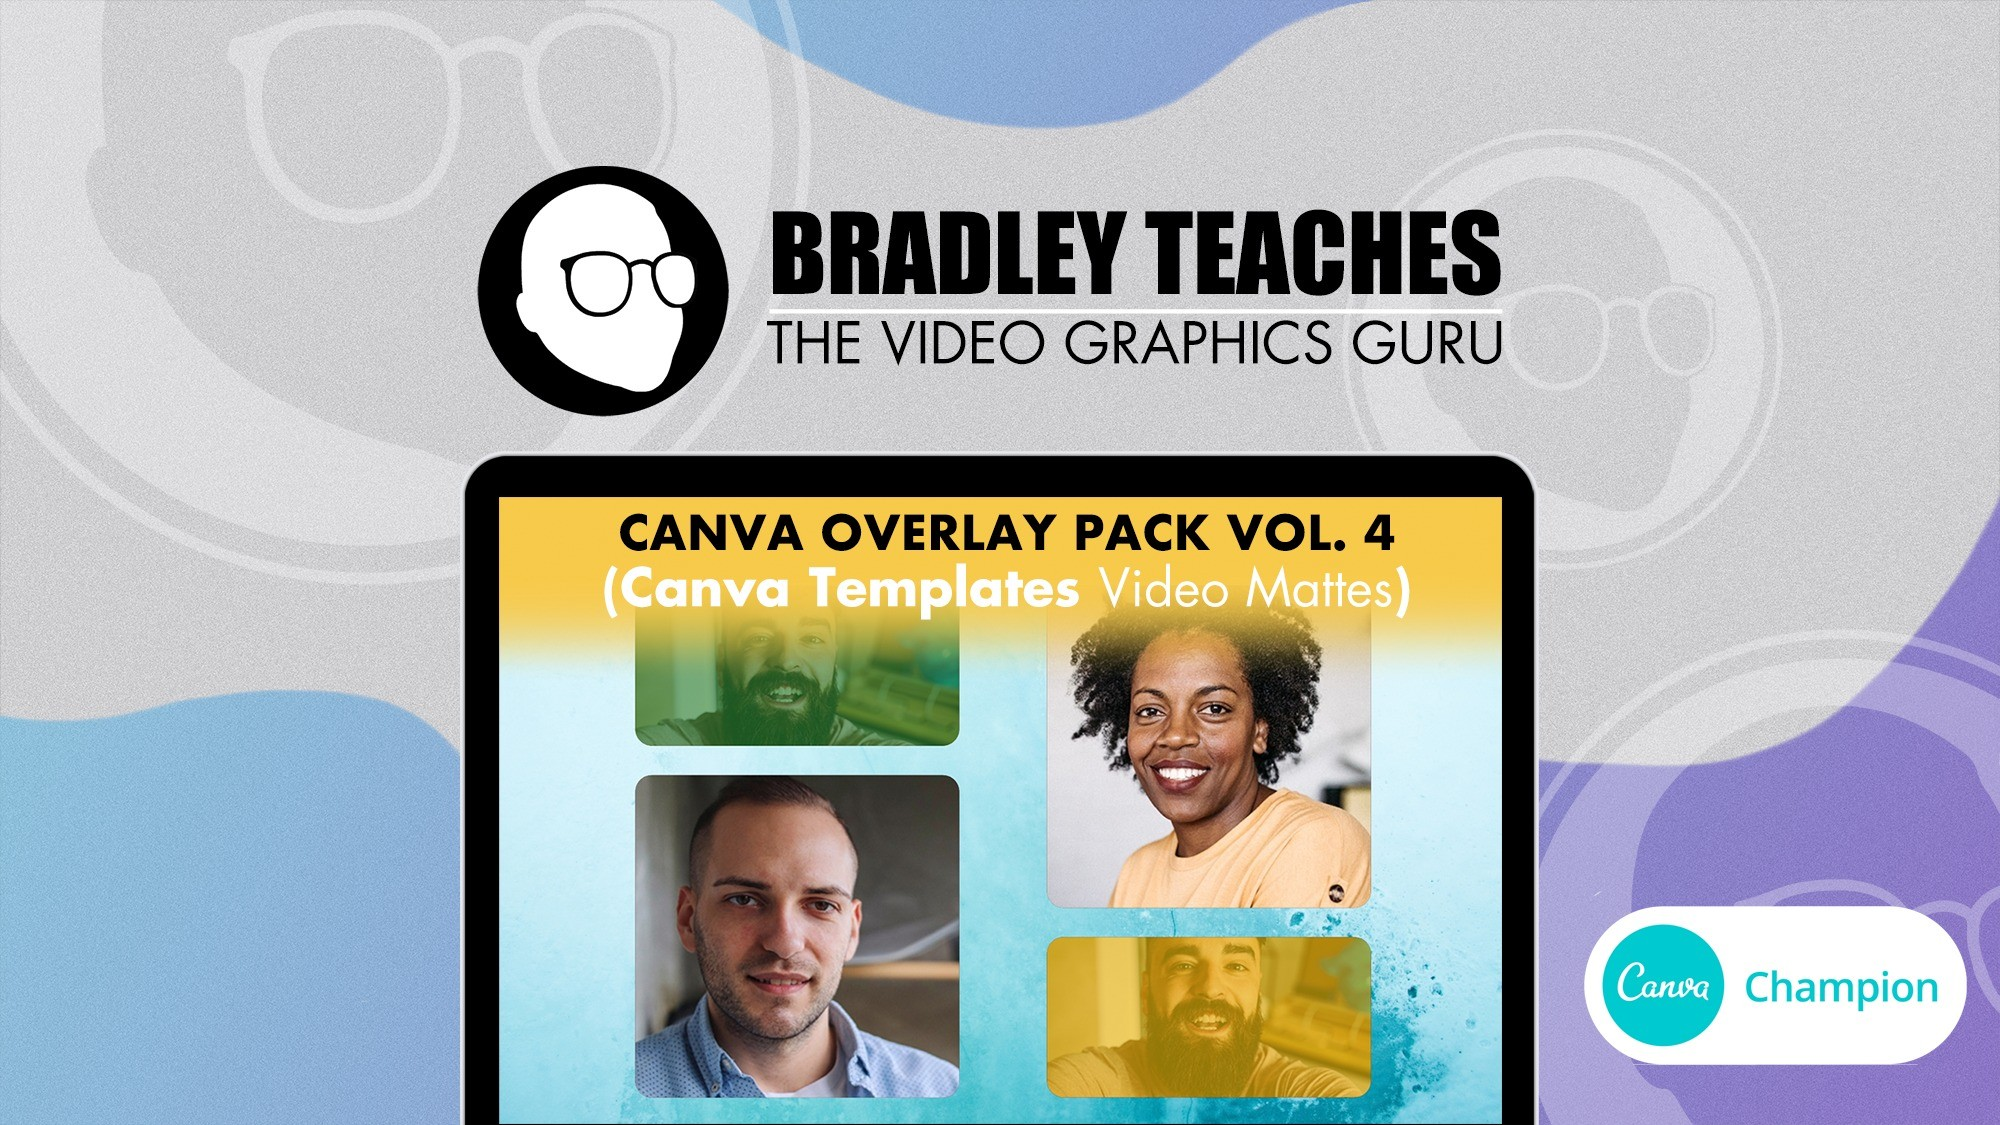 AppSumo Deal for Overlay Pack - Canva Templates Vol. 4